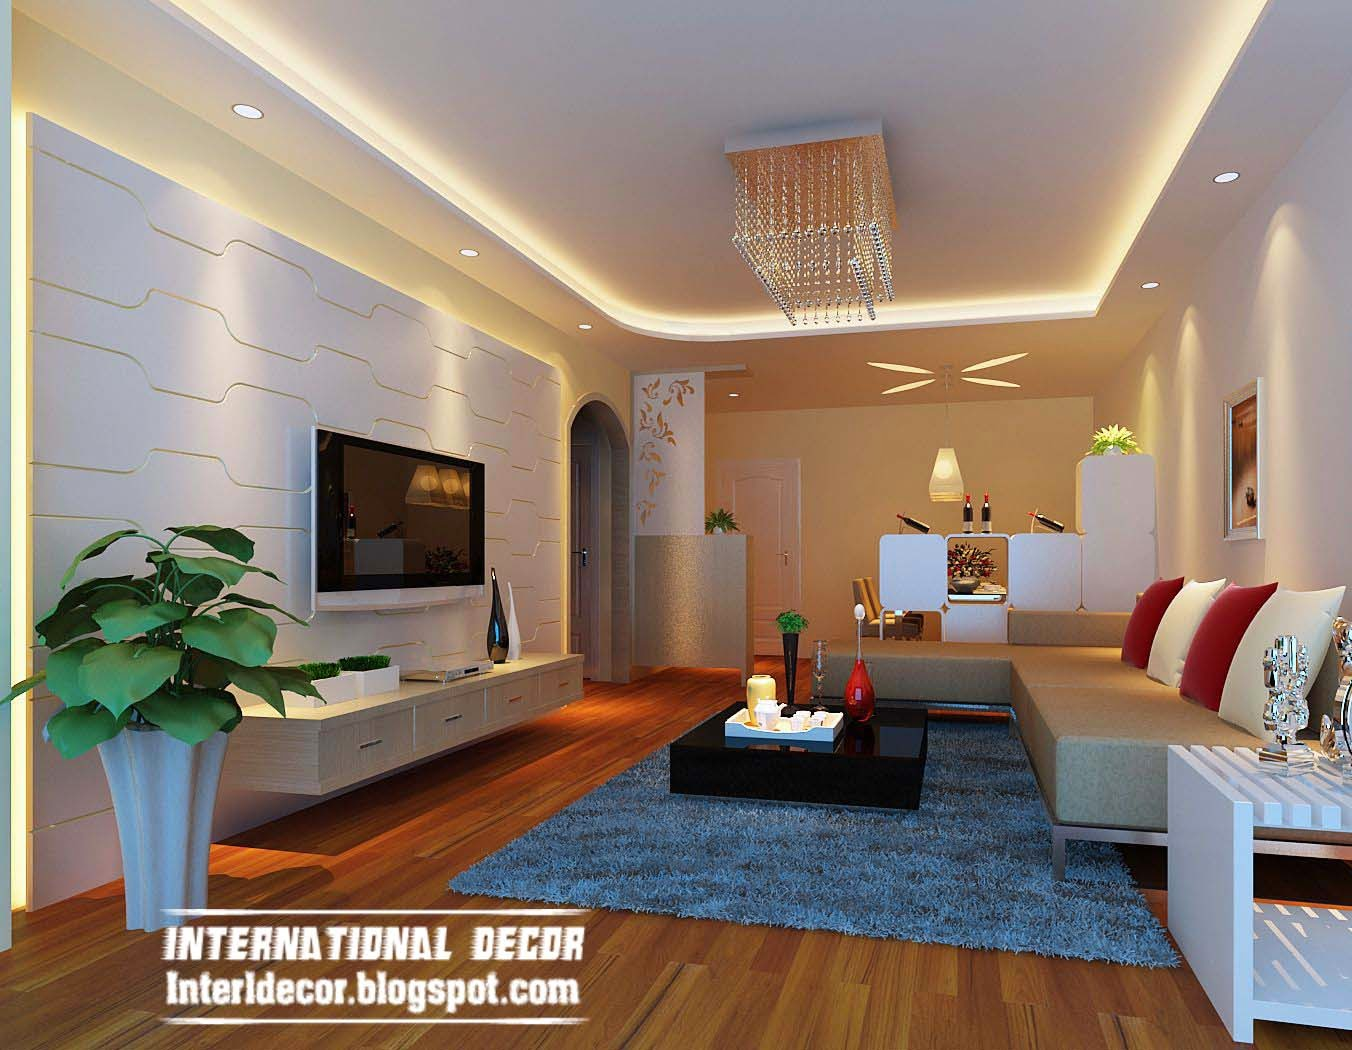 Top 10 suspended ceiling tiles designs and lighting for for The best living room